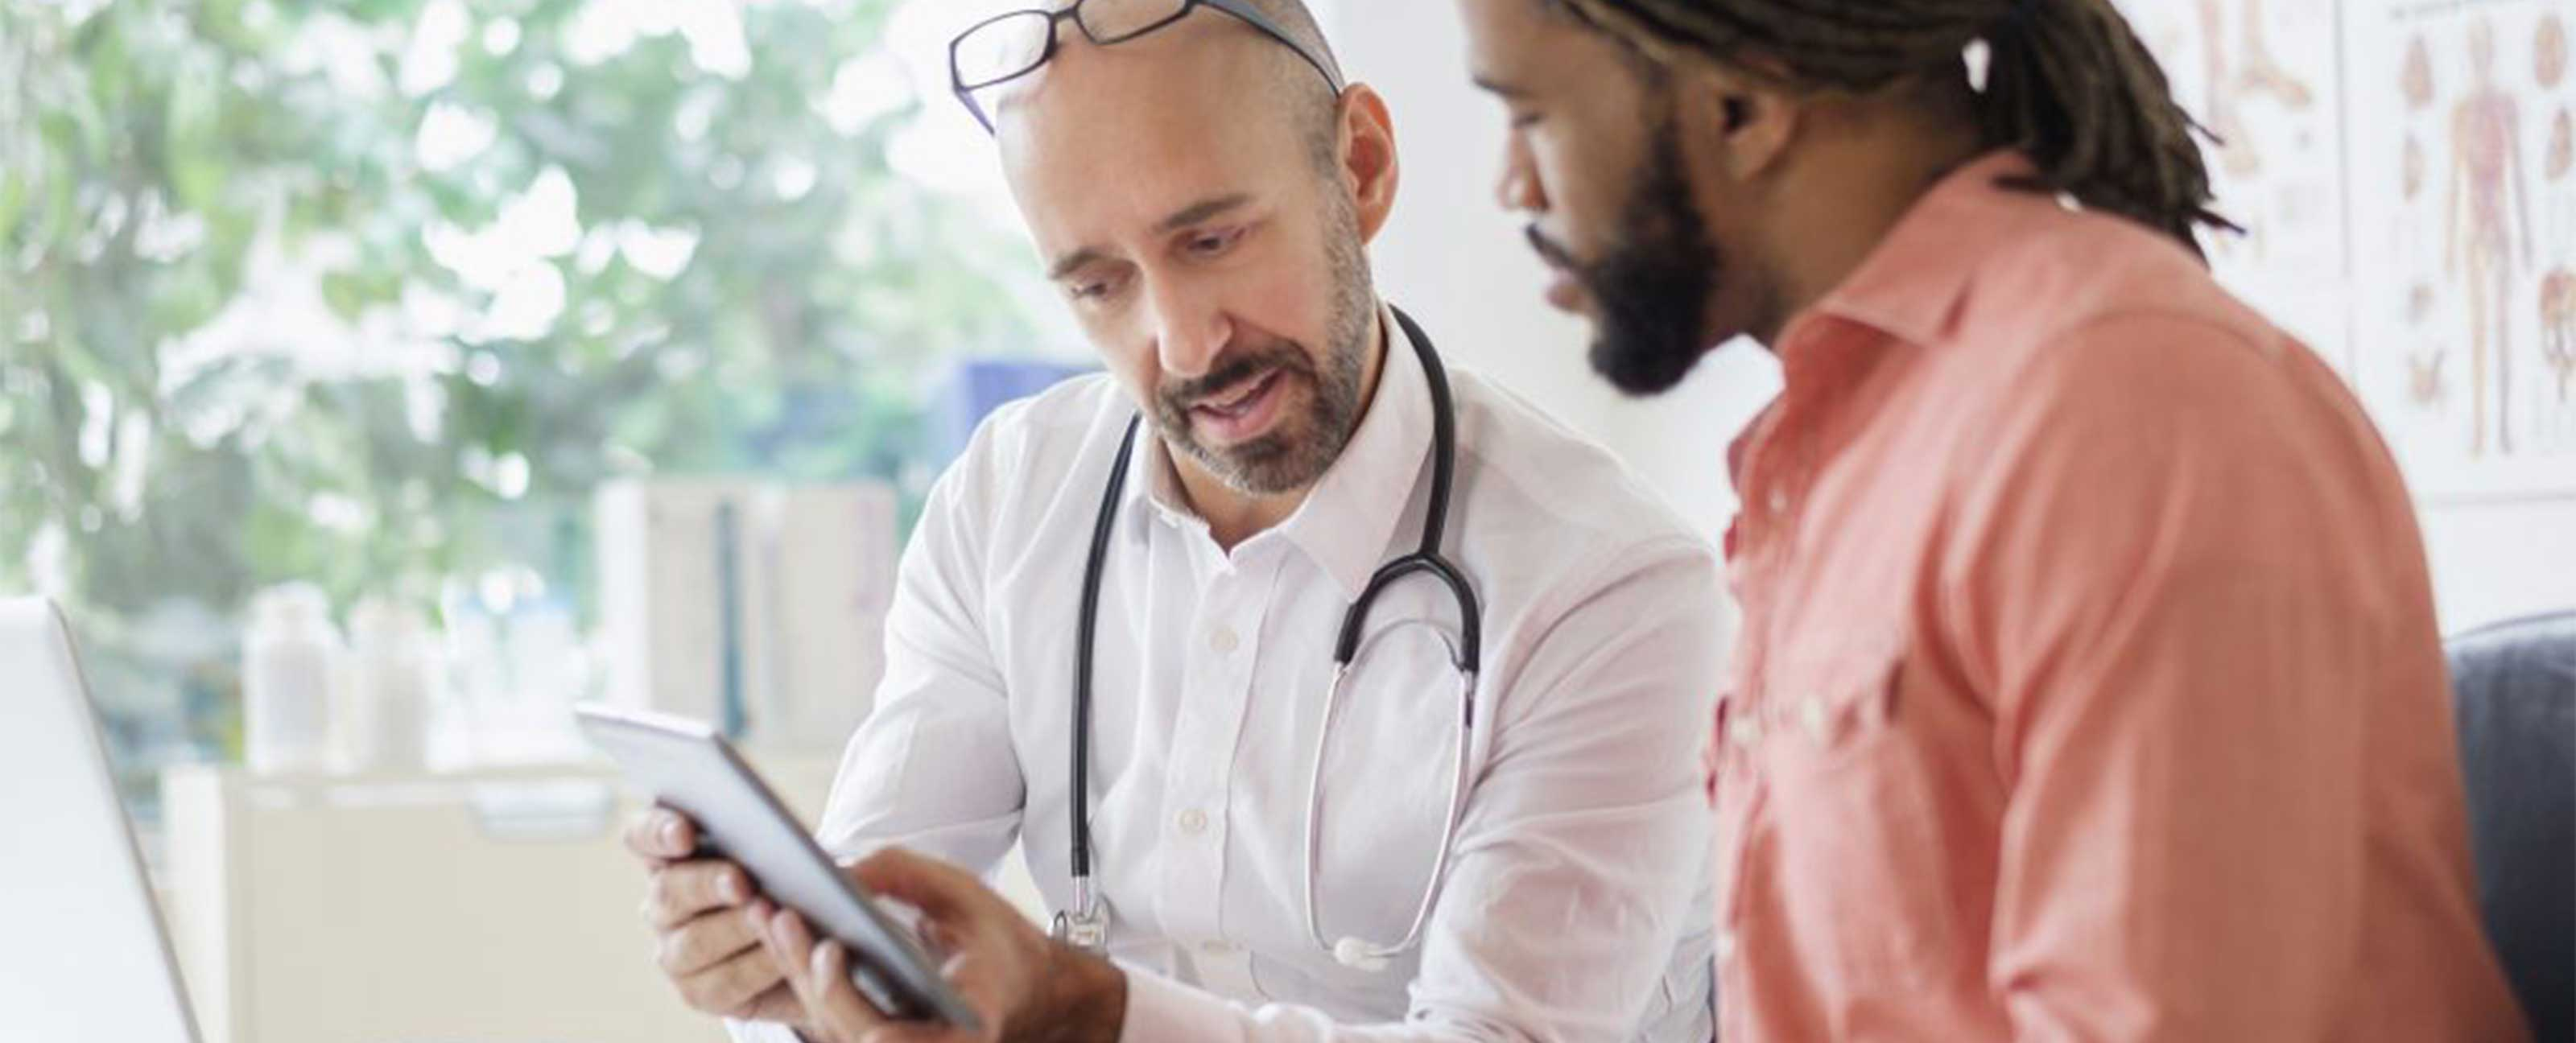 doctor showing a patient something on a tablet device